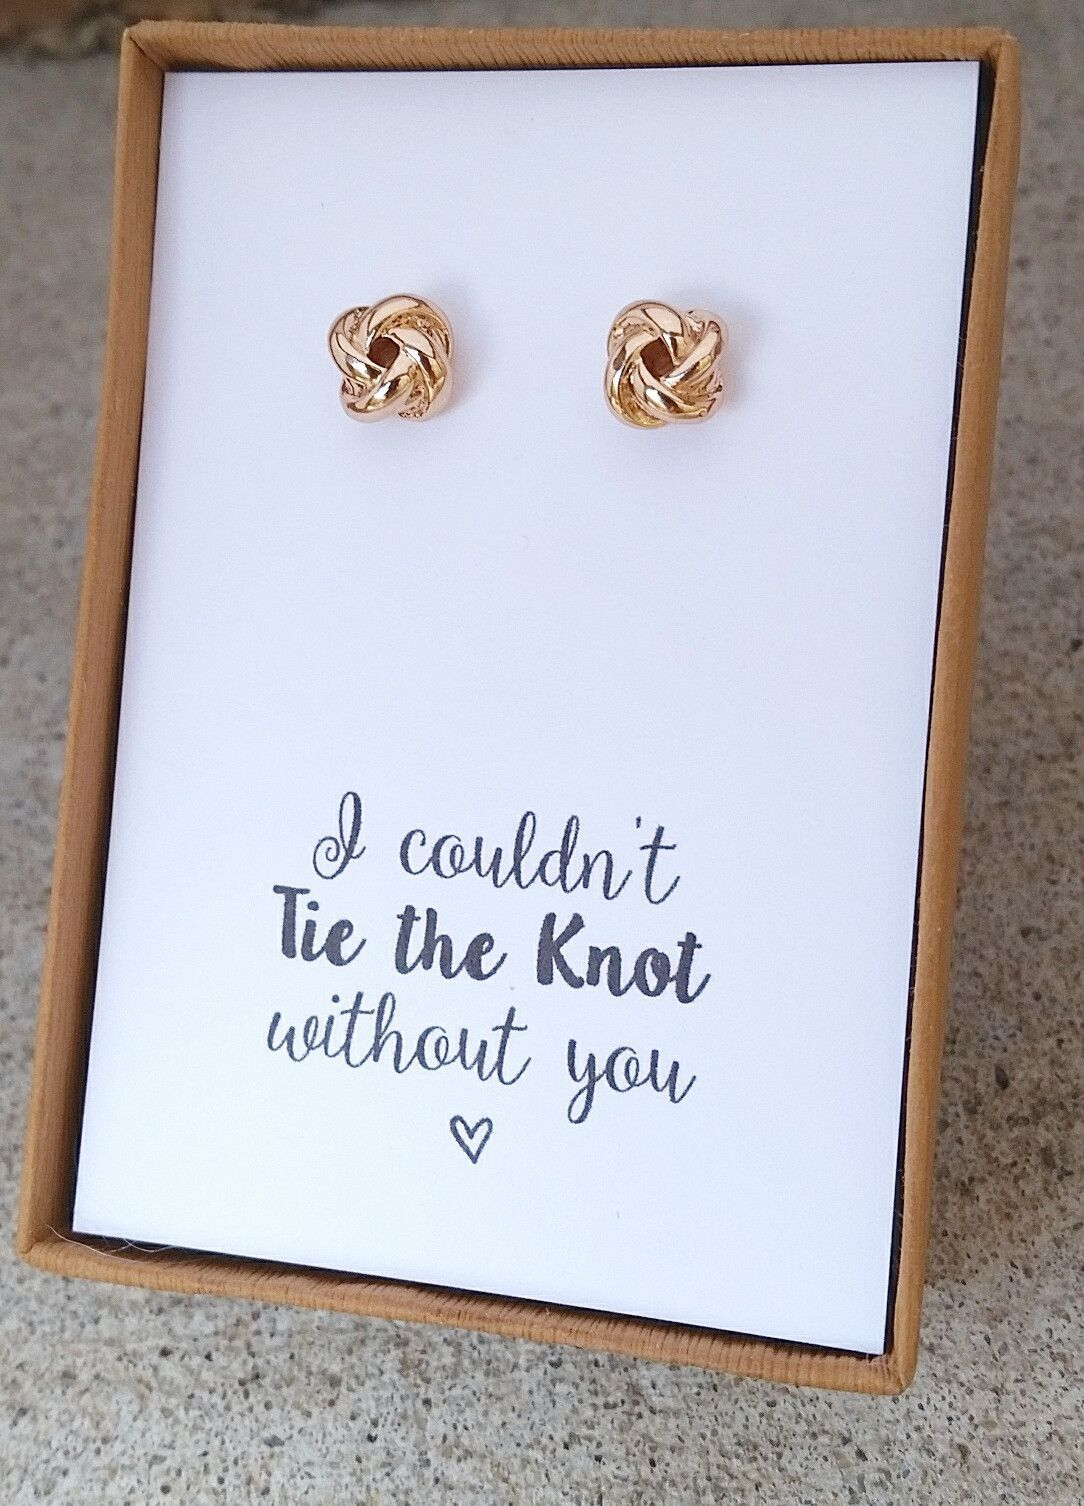 ee48483f6 Wedding Ideas/Knot Bridesmaid Earrings/Bridesmaid Gifts/Bridesmaid  Proposal/Rustic Wedding